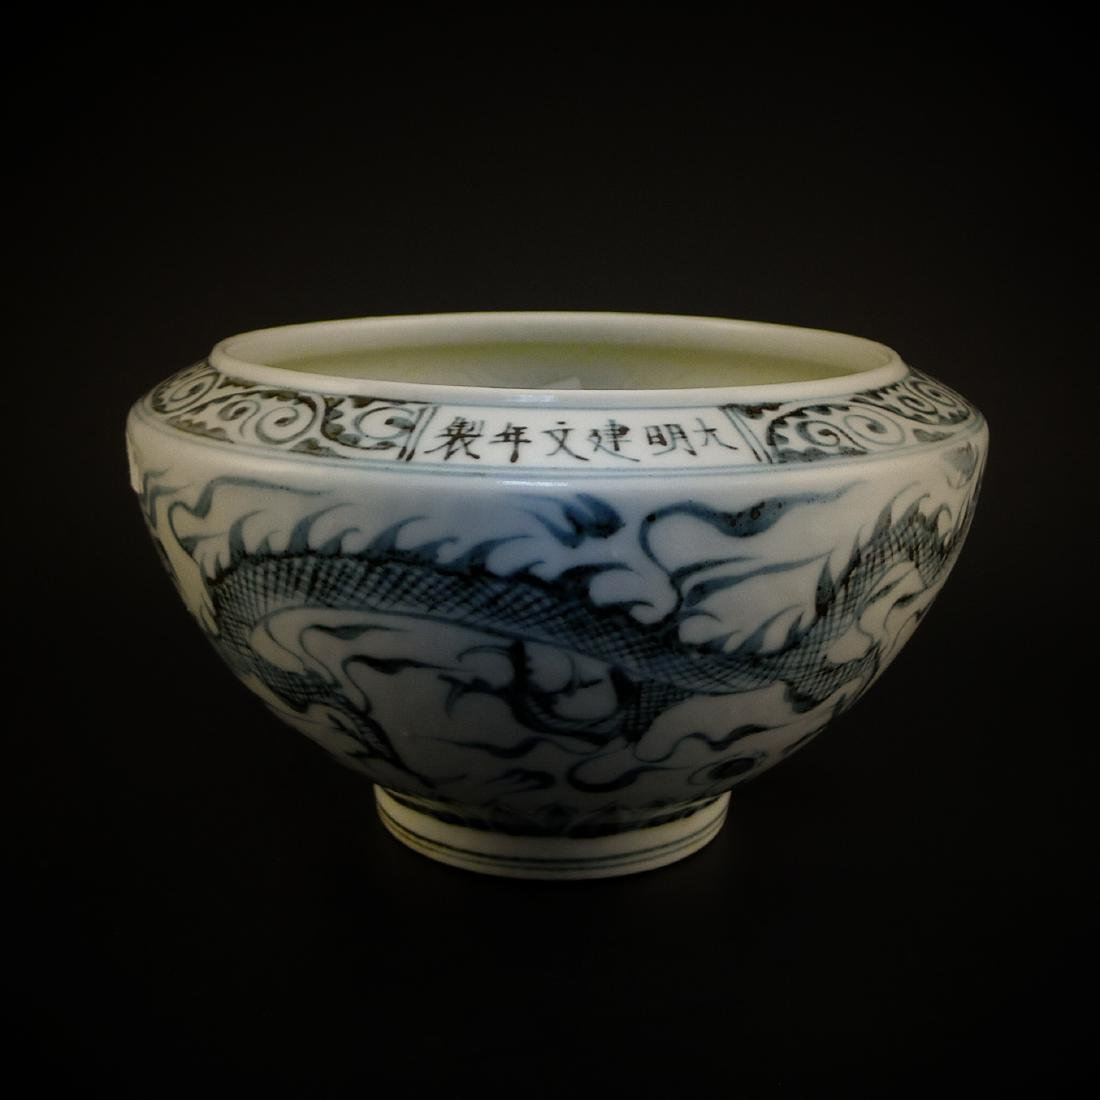 A CHINESE BLUE AND WHITE 'DRAGON' PORCELAIN BOWL